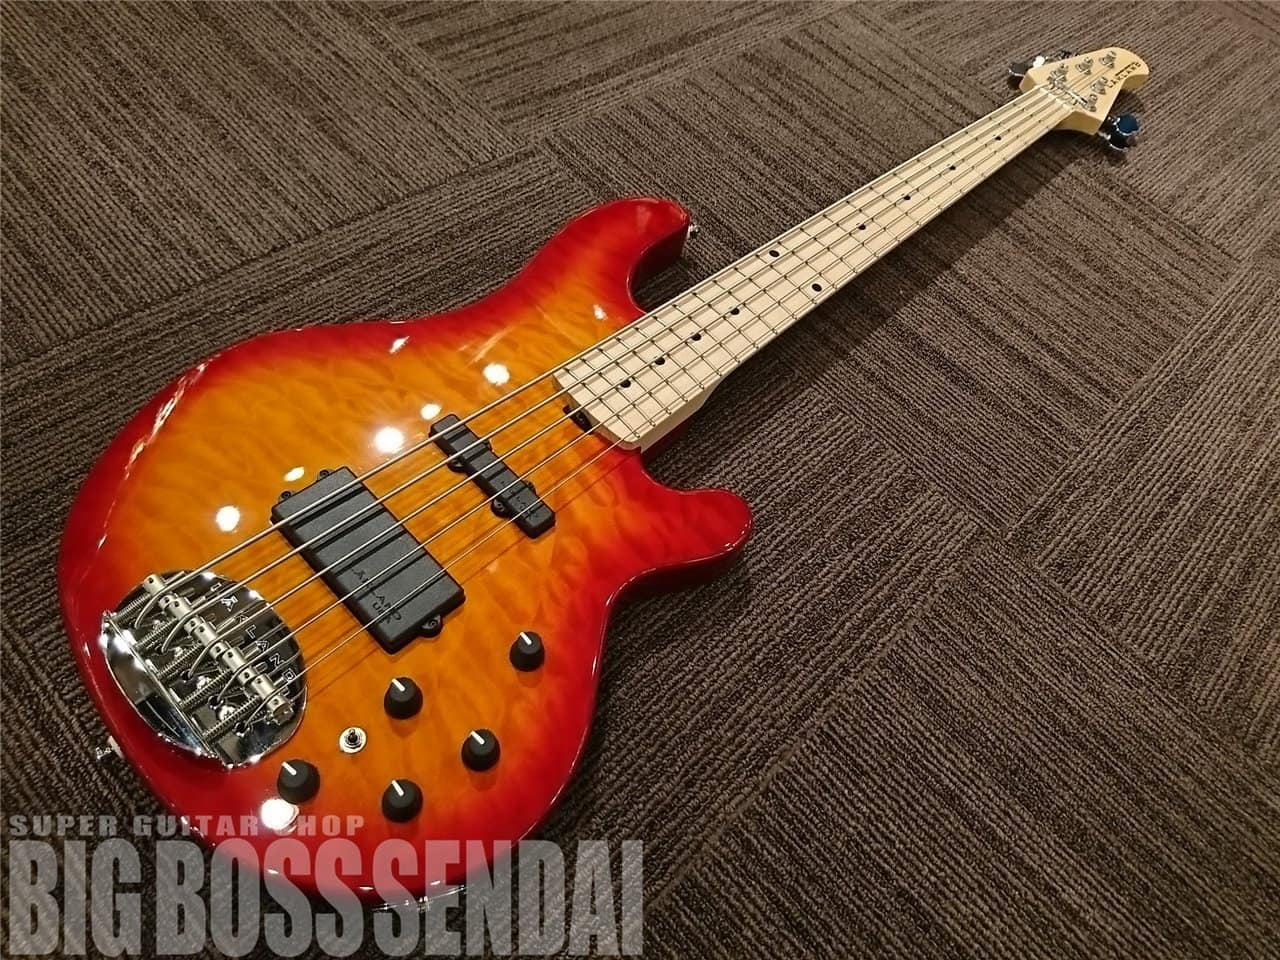 【即納可能】LAKLAND(レイクランド) Shoreline Series SL55-94 Deluxe/M/ Cherry Sunburst 仙台店